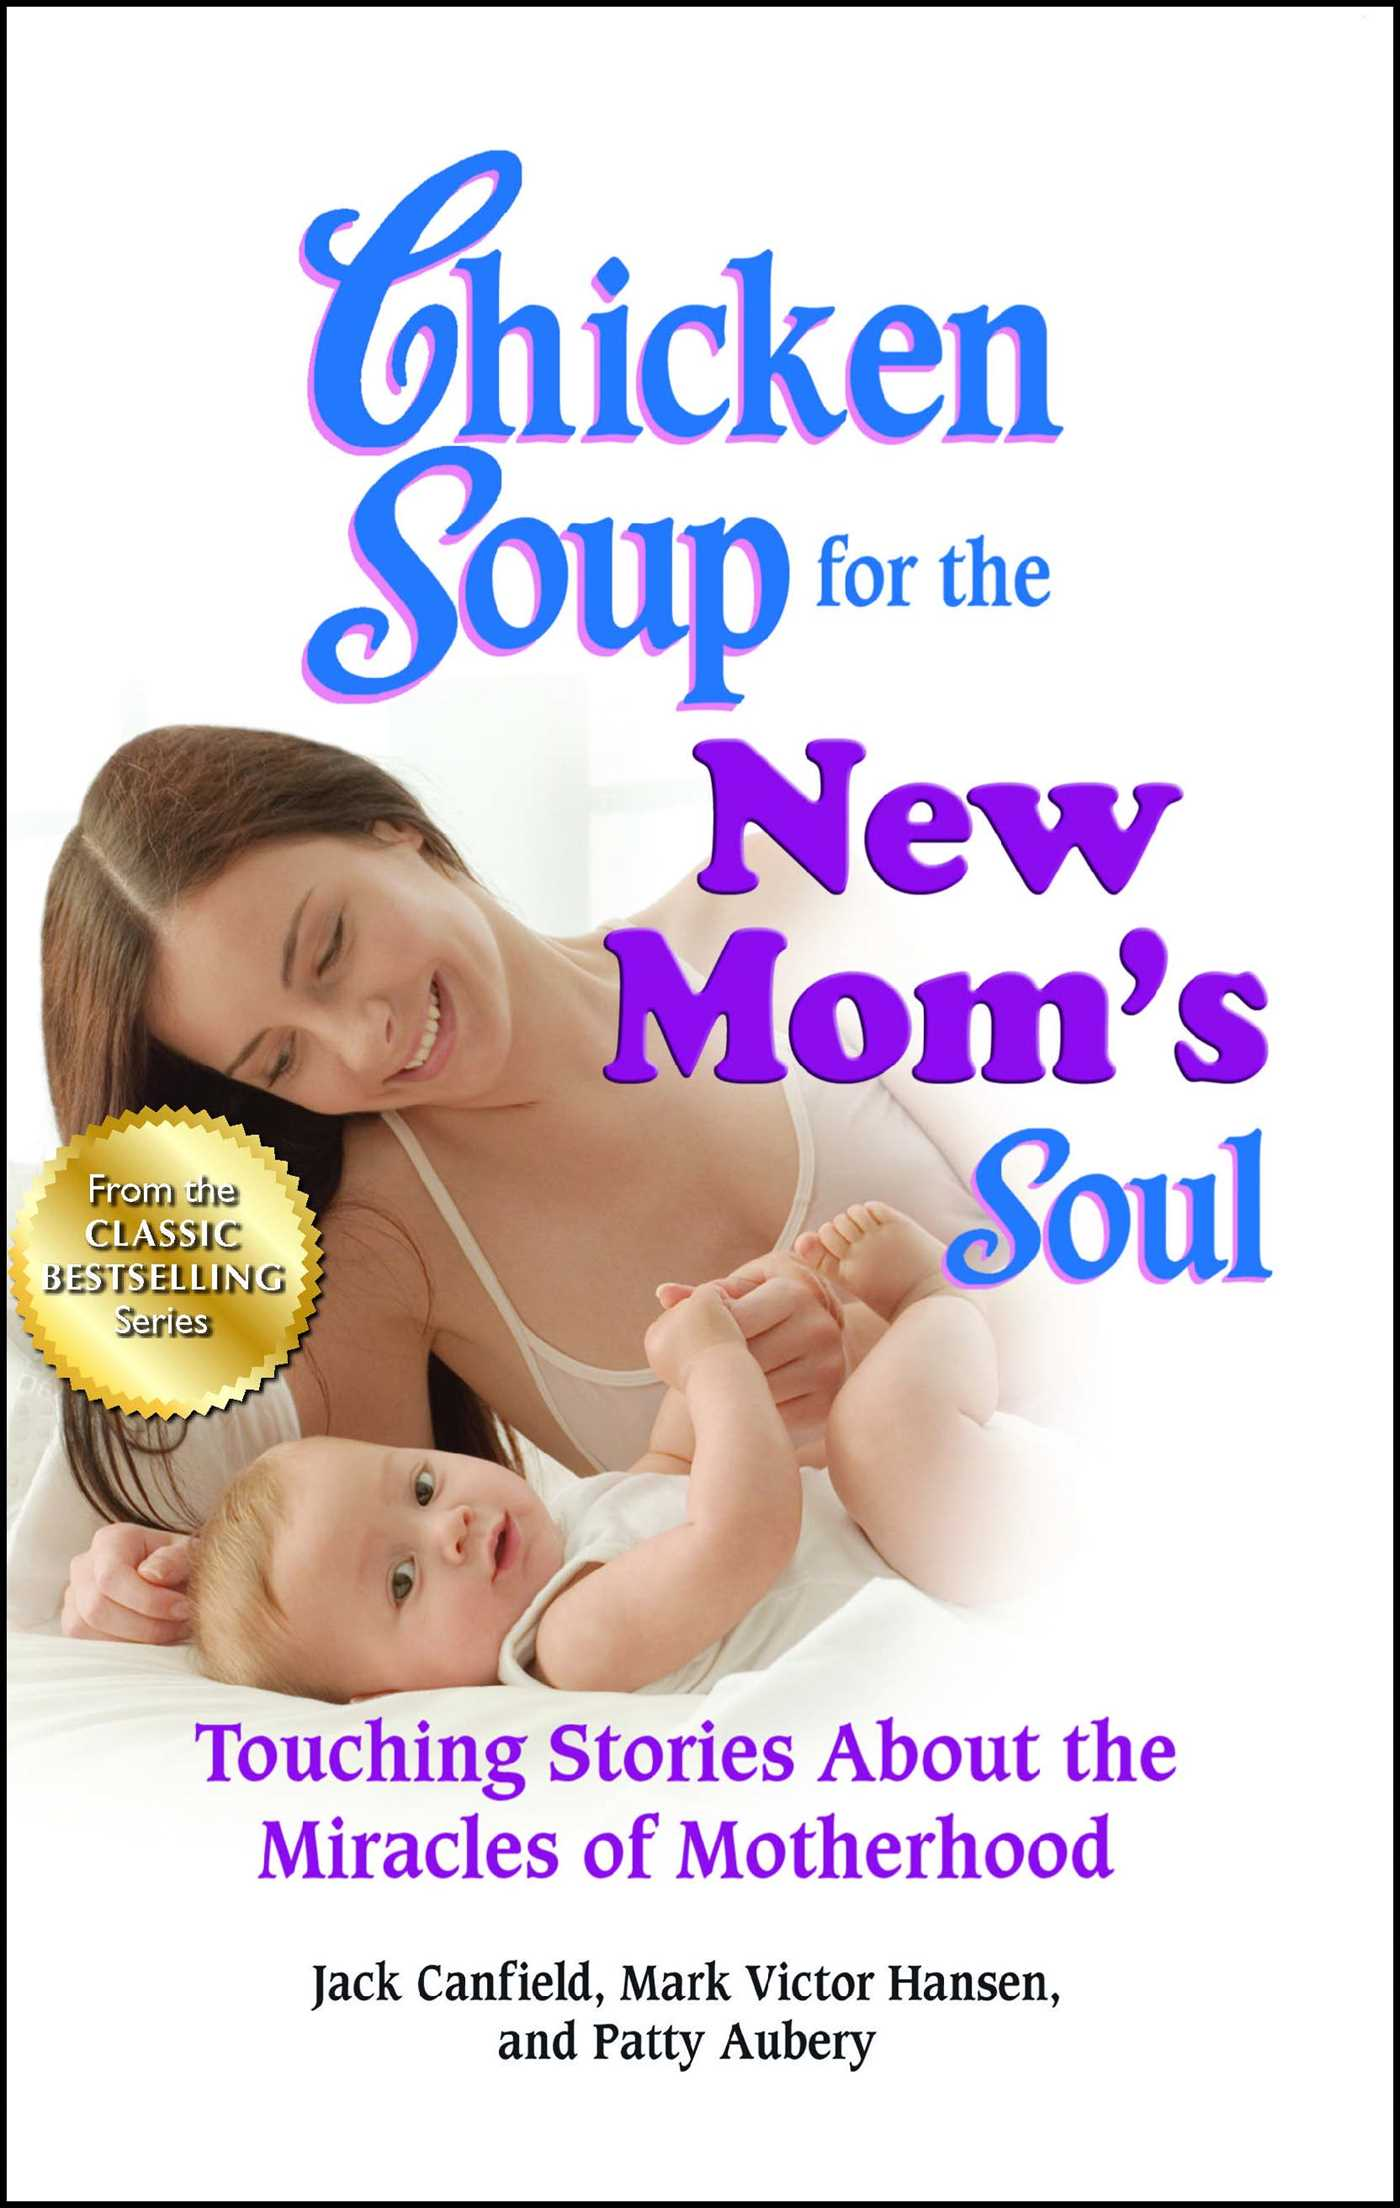 Chicken soup for the new moms soul 9781623610586 hr